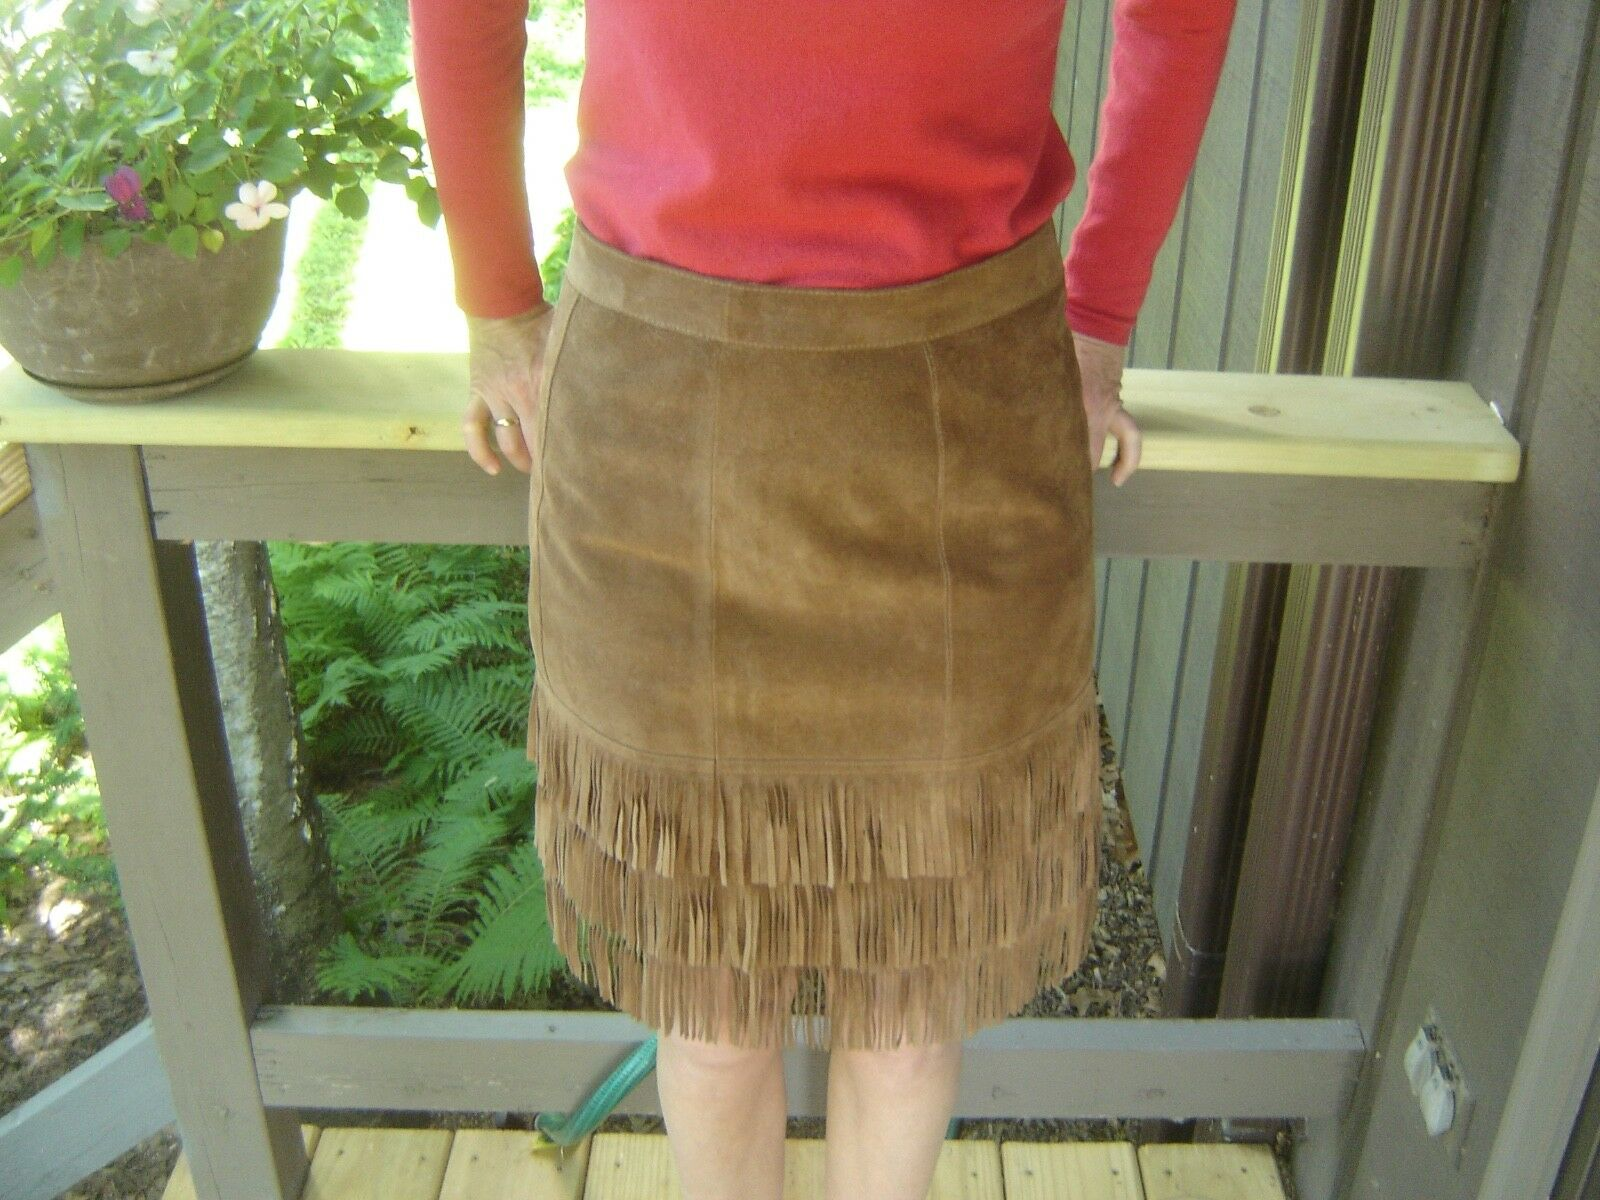 Ralph Lauren Sport skirt, brown suede leather, 3 row fringes, earthing, size 4